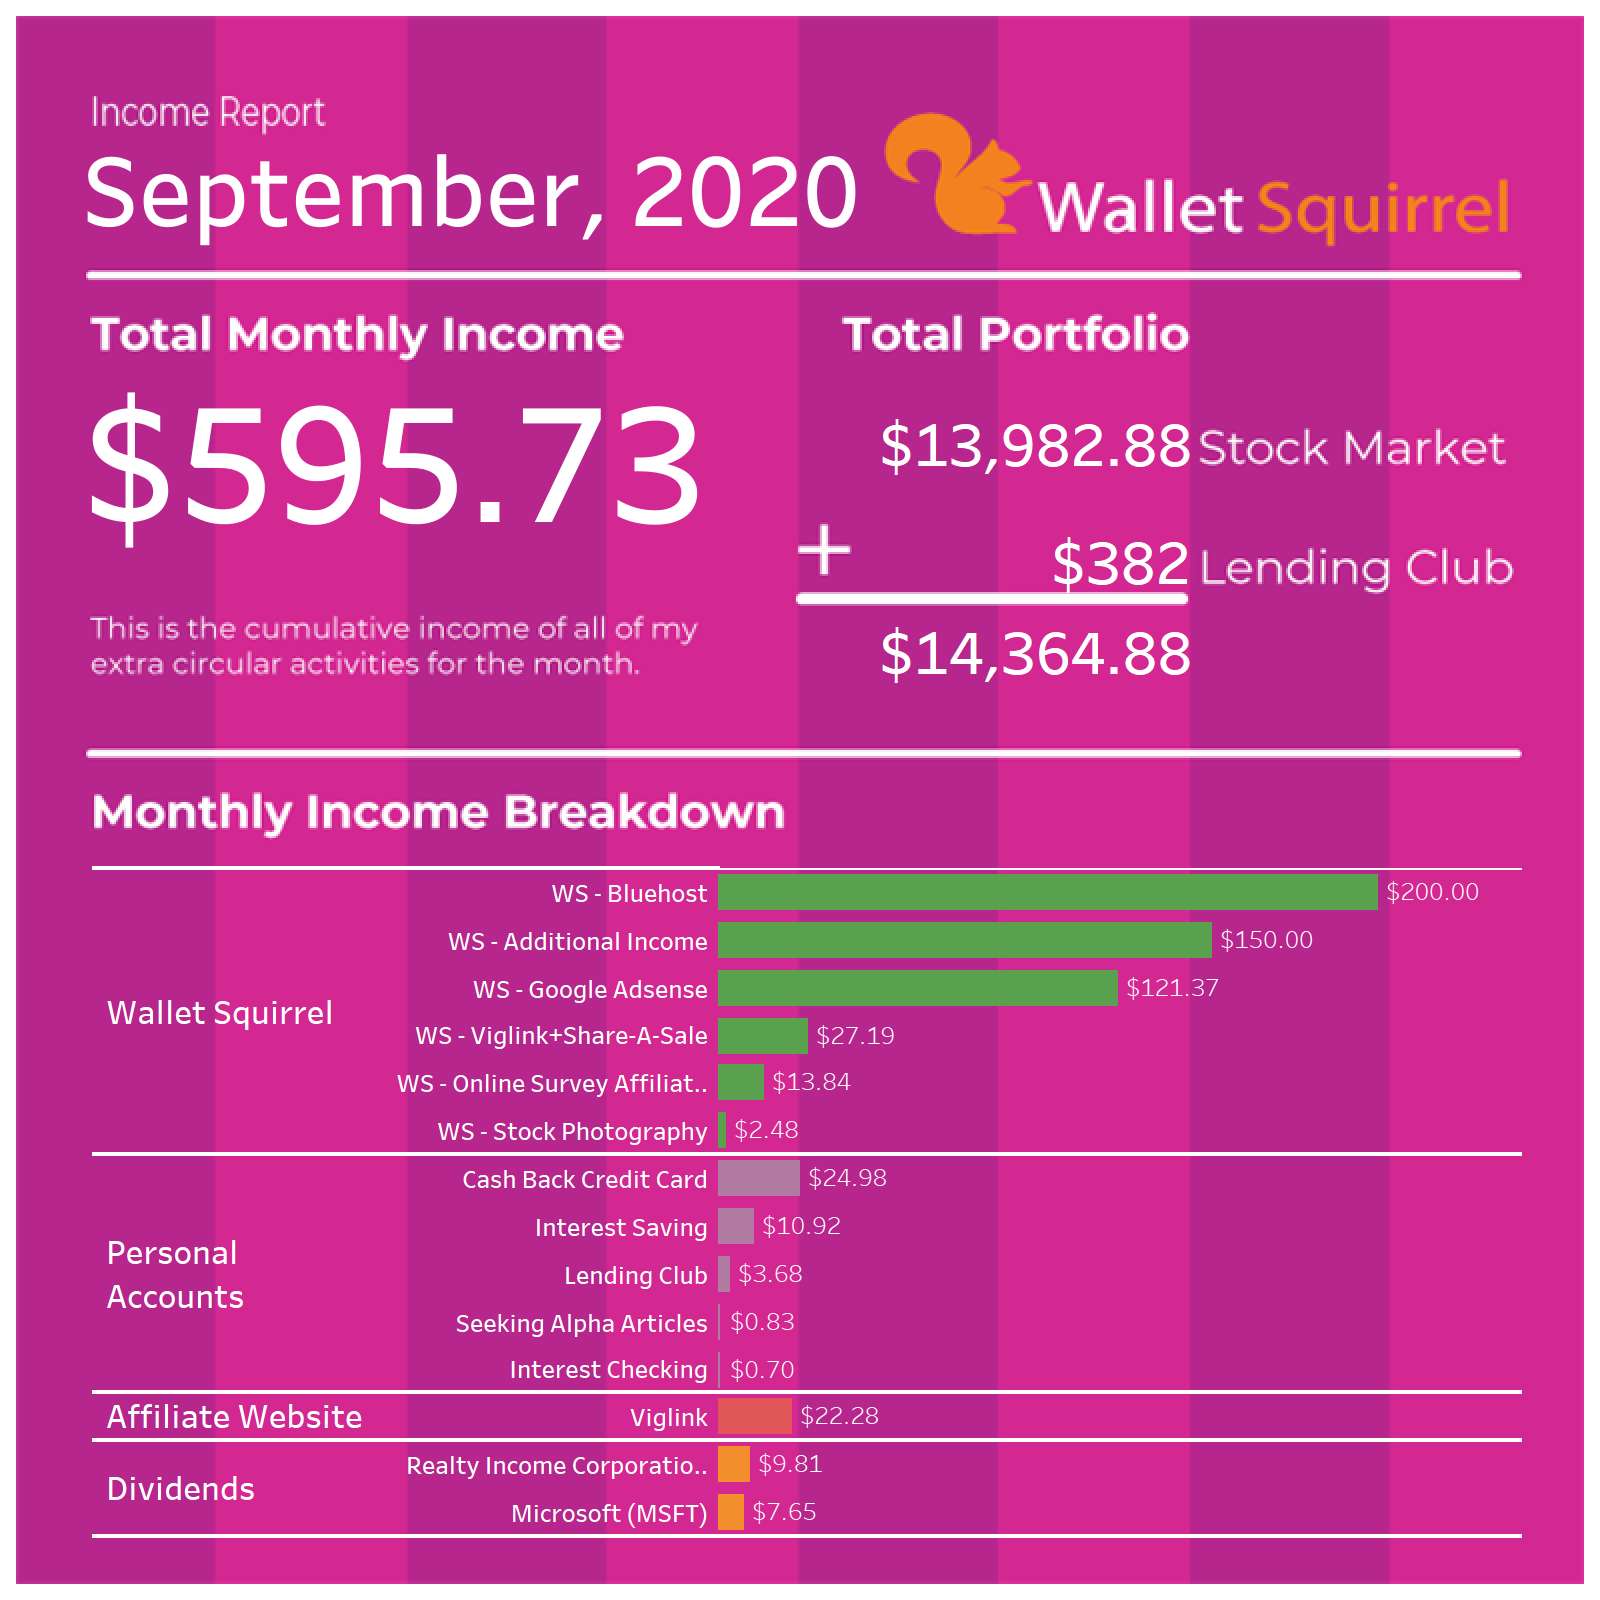 We've been sharing these Income Reports since 2015 as a way to share how easy (or hard) it is to earn extra money online and what it's really like starting a blog. Overall, it's been a blast and a great hobby as we build up our savings for retirement!